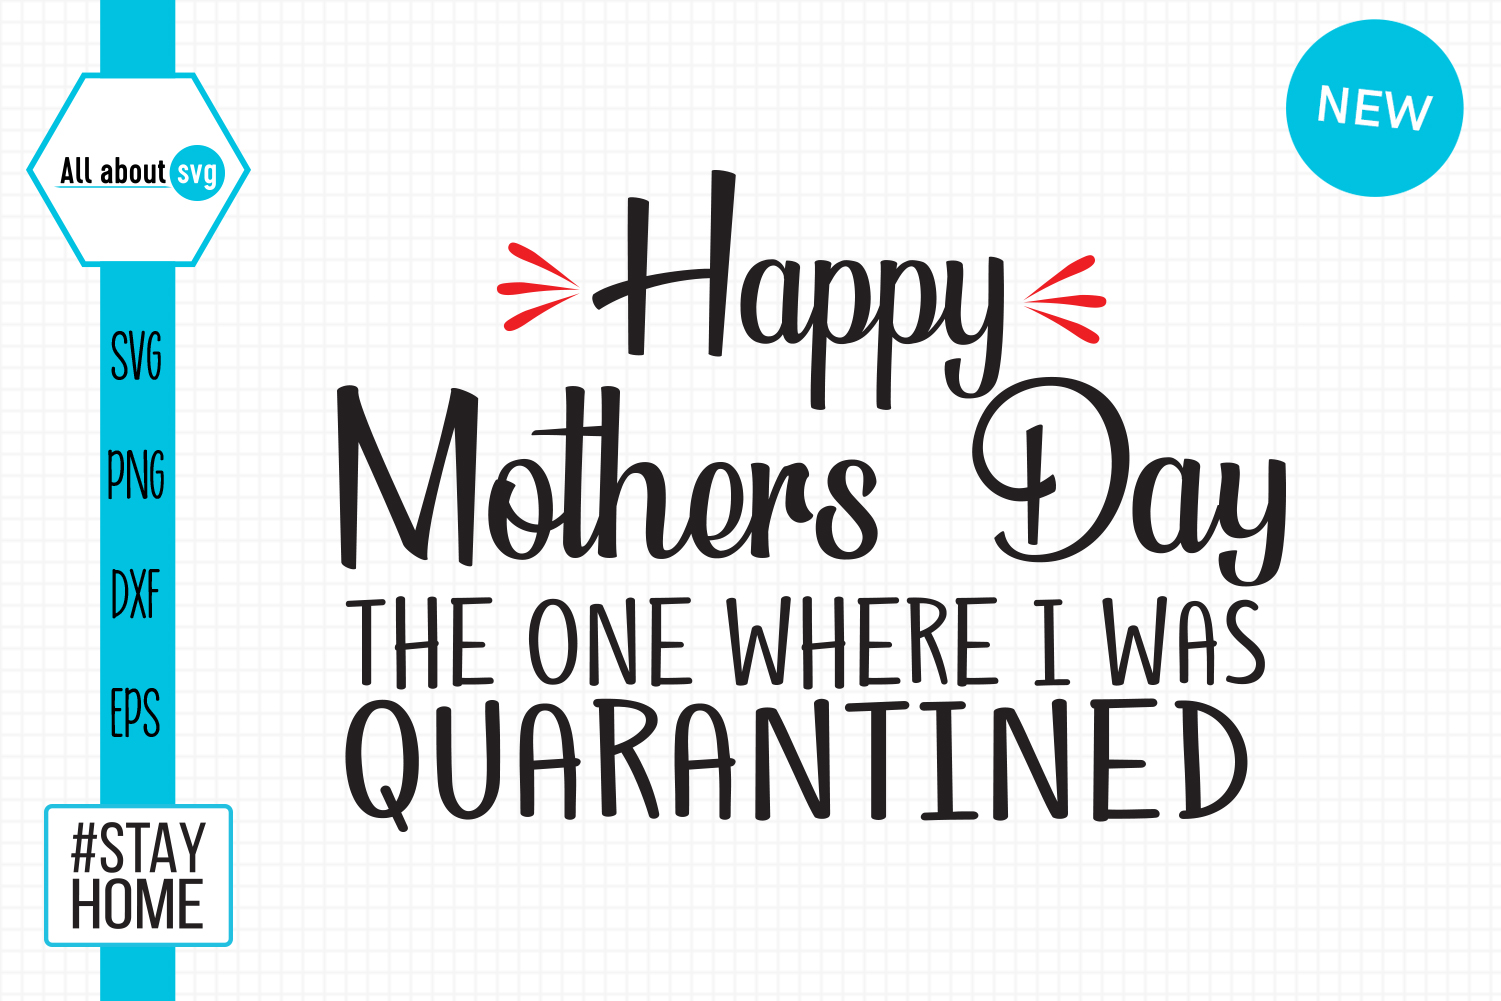 Download Free Happy Mothers Day Quarantined Graphic By All About Svg for Cricut Explore, Silhouette and other cutting machines.